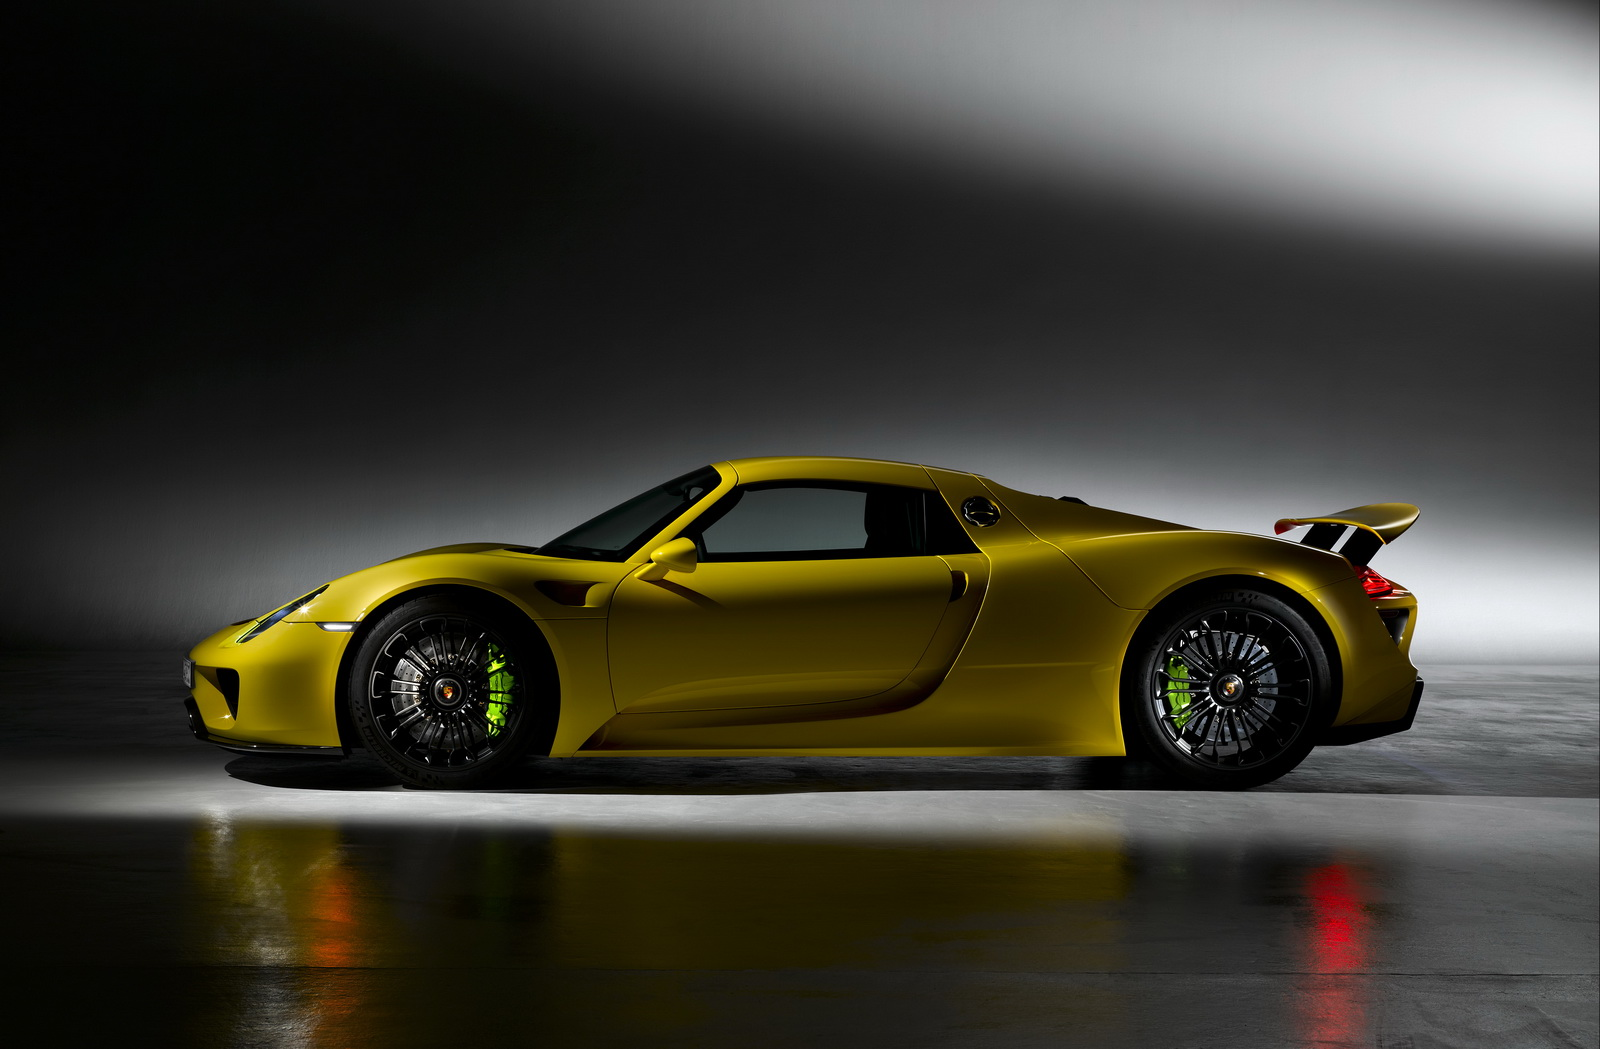 porsche 918 parts pricelist revealed it s eye watering engine costs 203 385. Black Bedroom Furniture Sets. Home Design Ideas